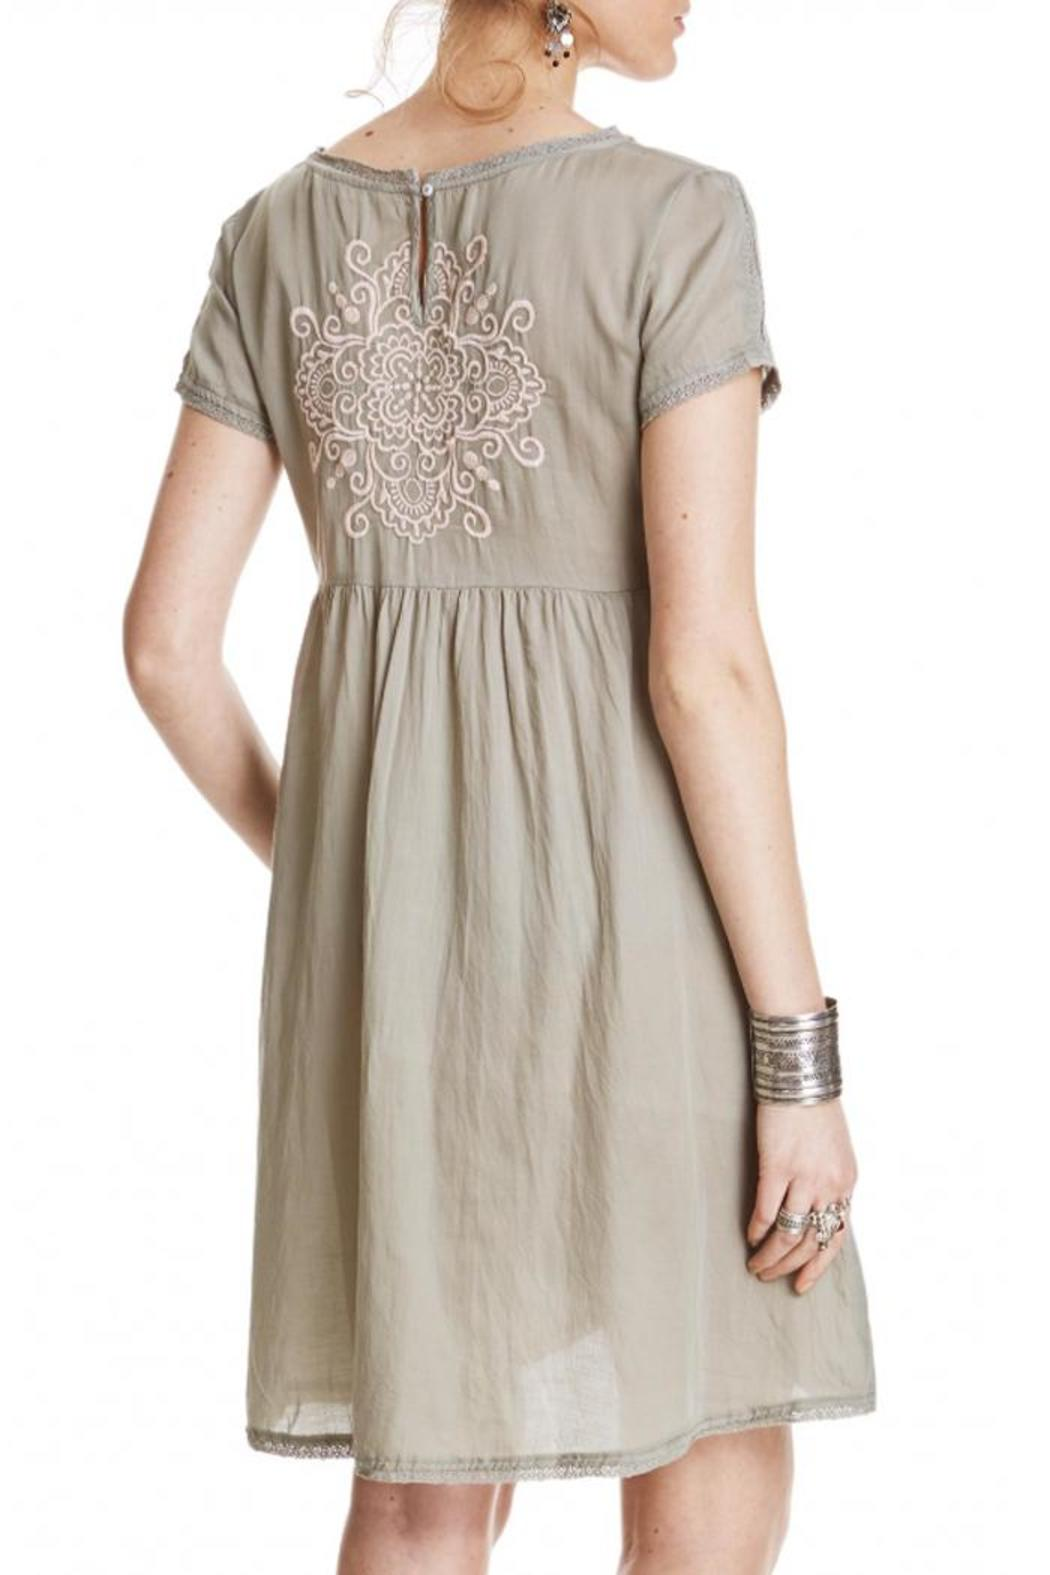 Odd Molly Sage Embroidered Dress - Front Full Image